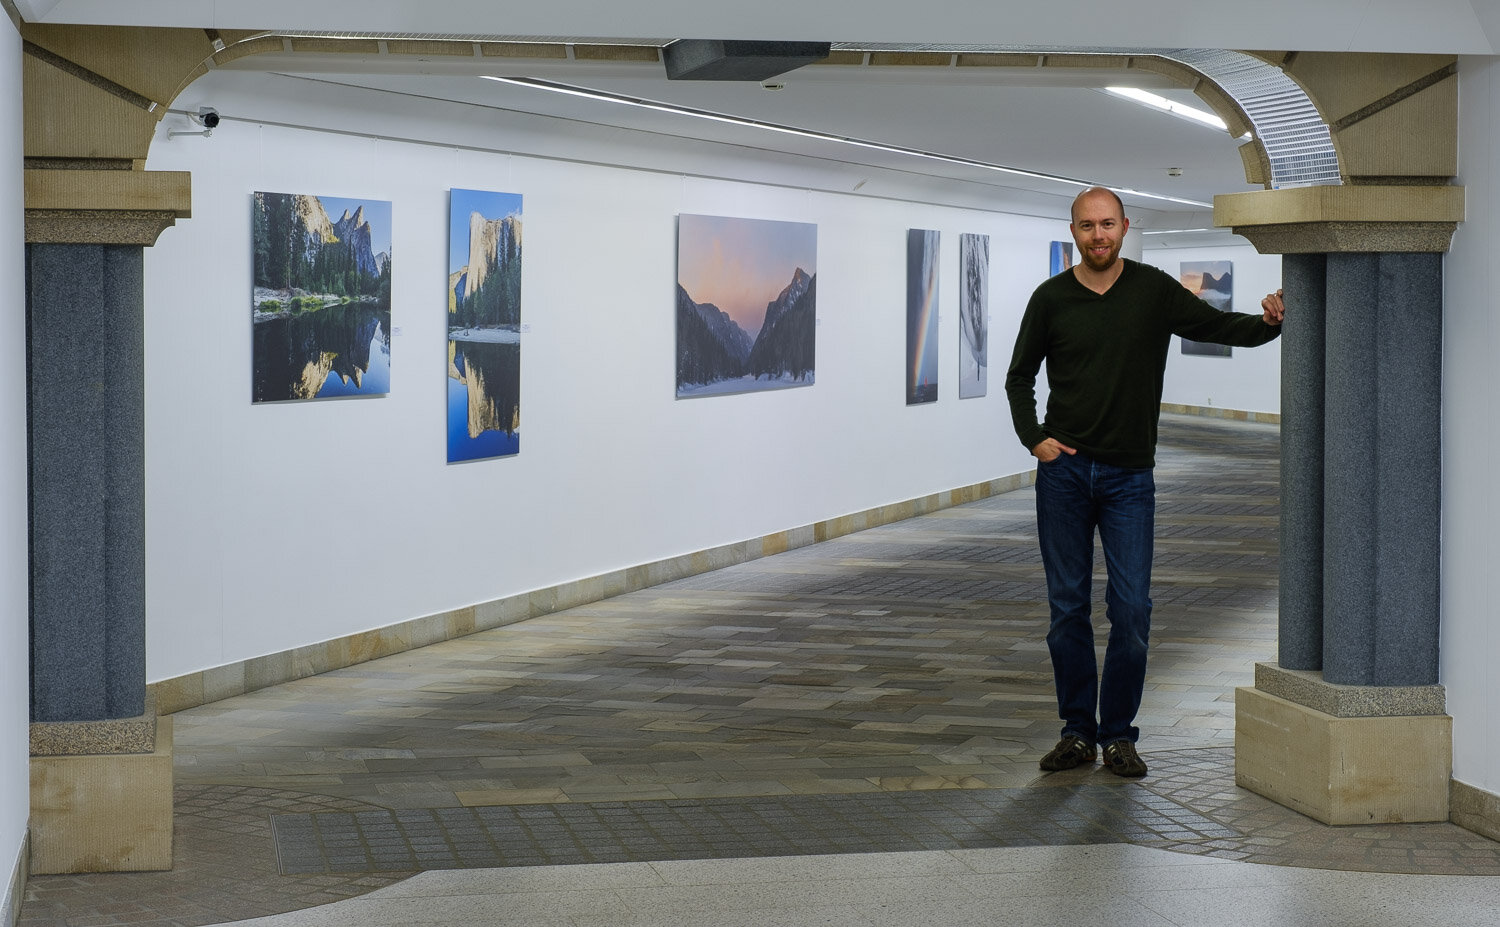 Landscape photography exhibition at the Contemporary Art Gallery Am Tunnel in Luxembourg City - Home and Away - Landscapes by Christophe Van Biesen - The artist in the gallery